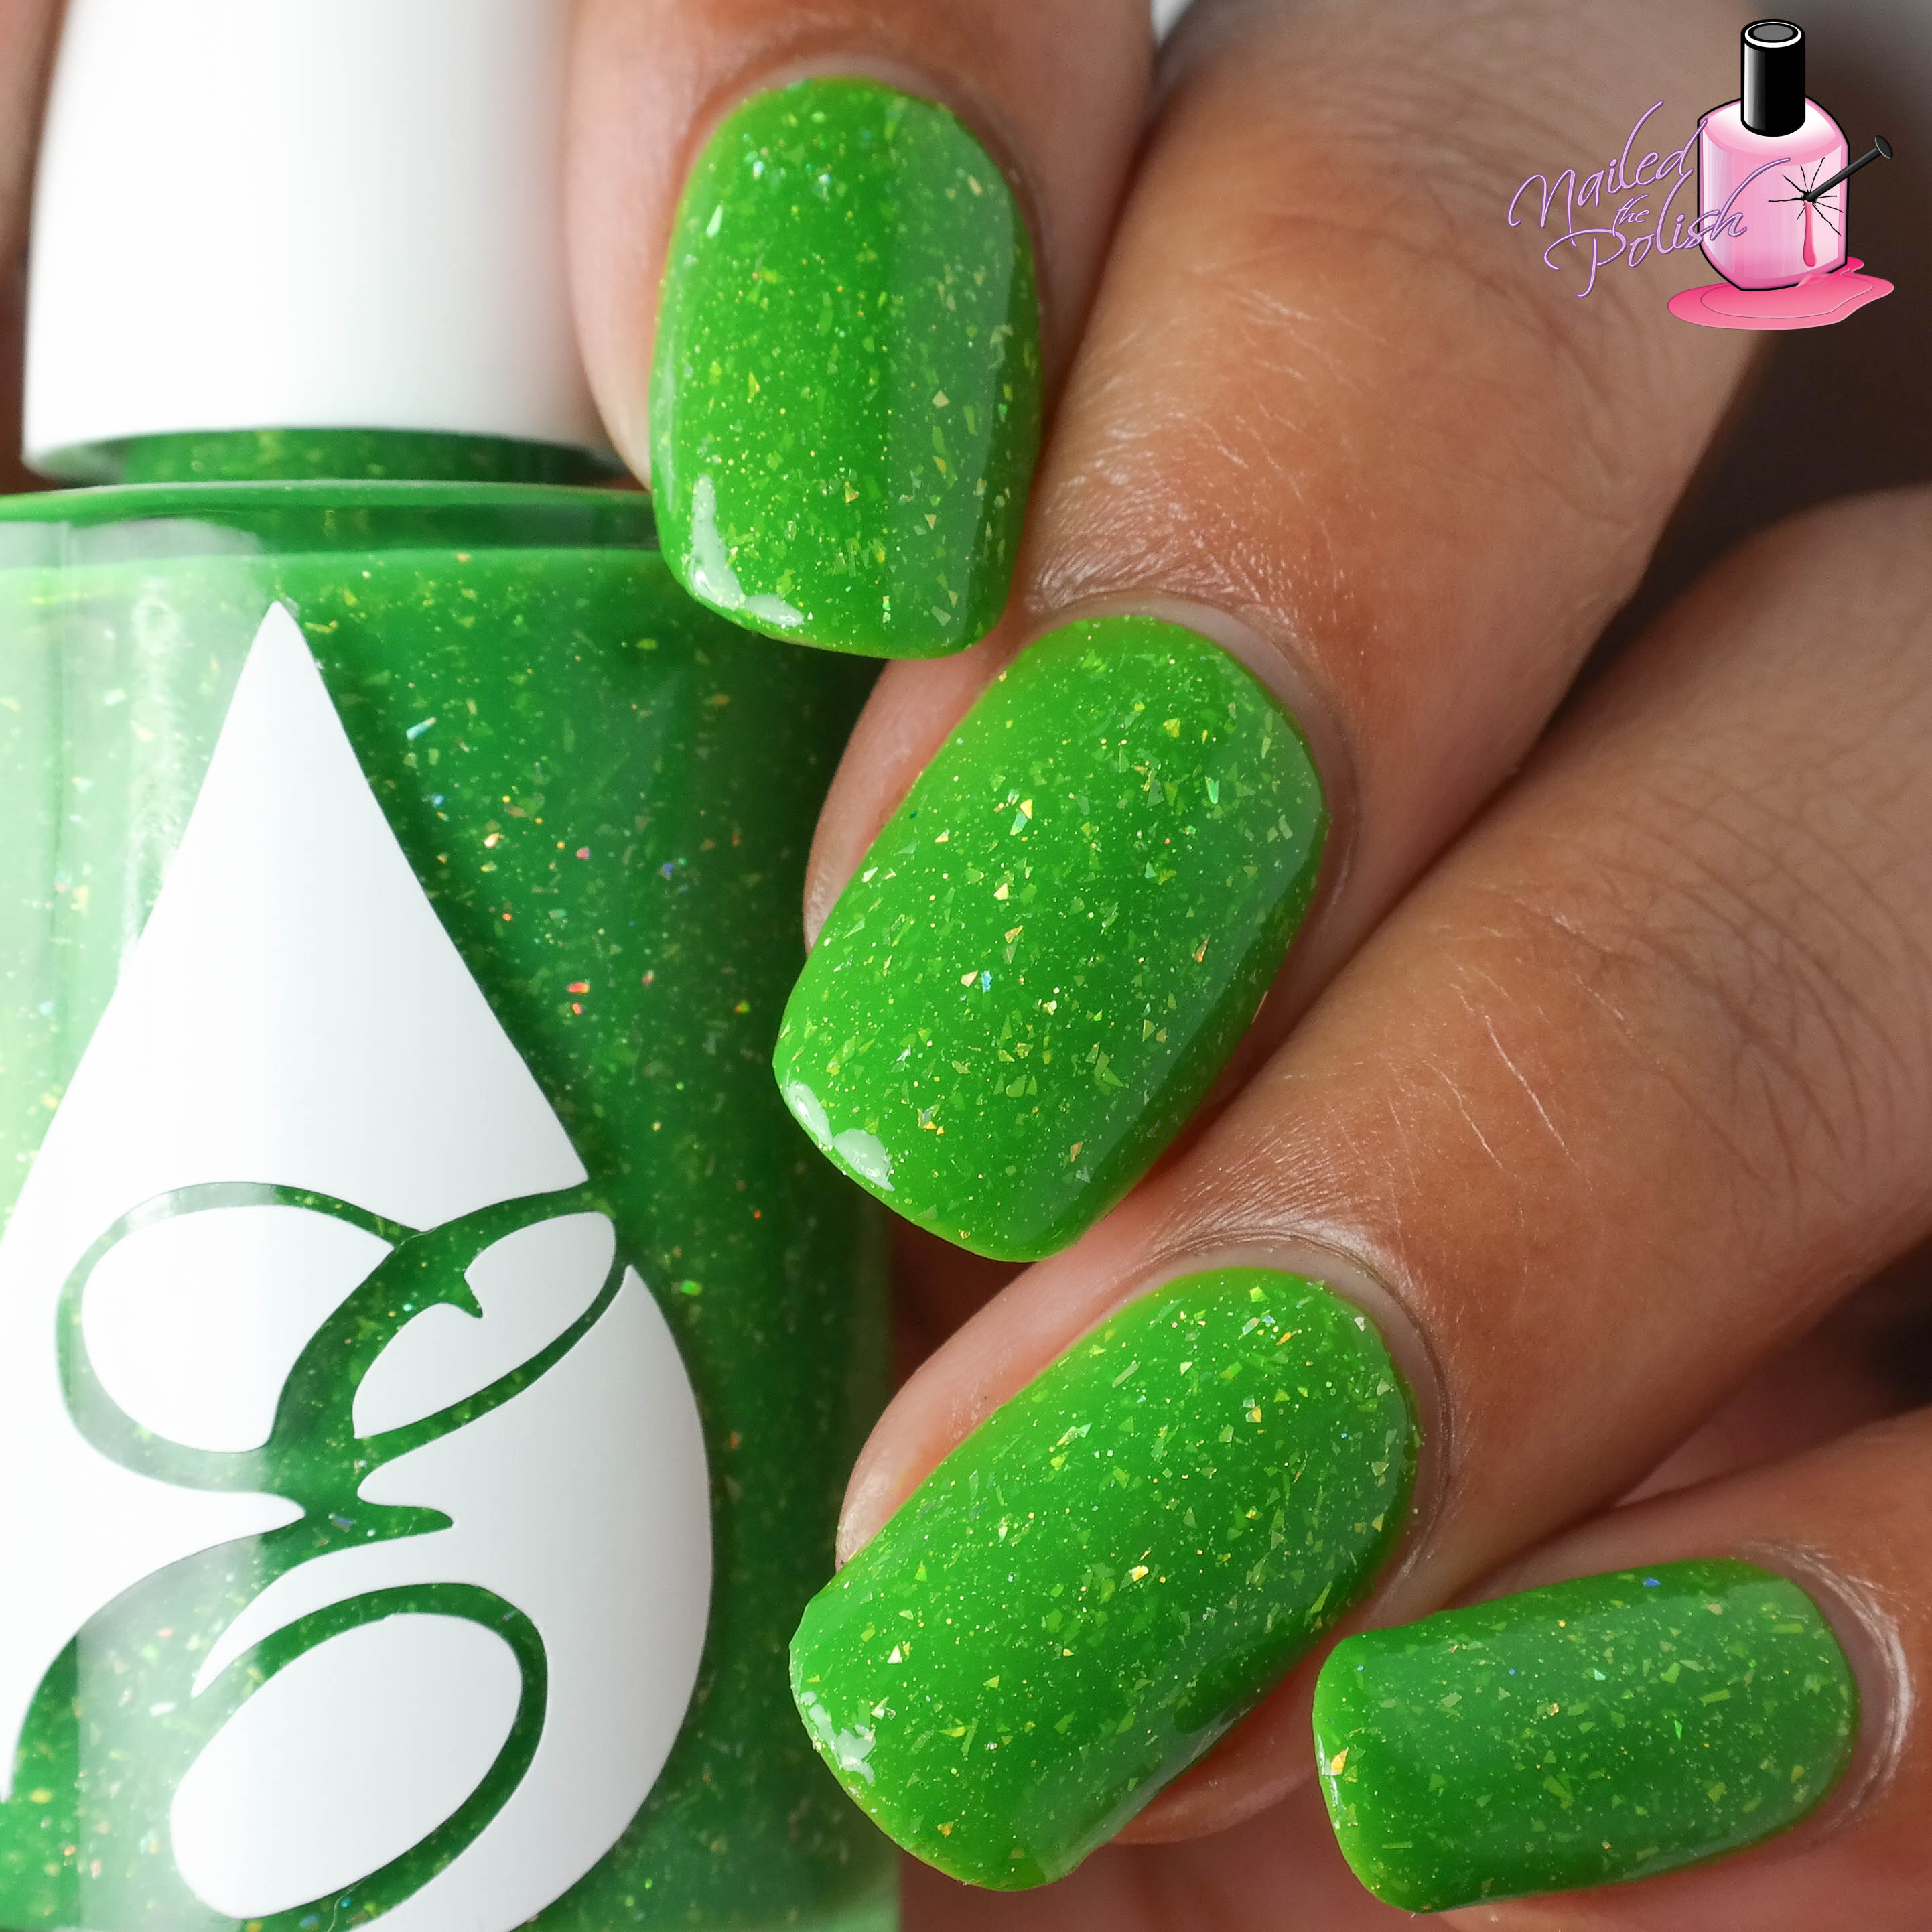 Zapped Apple Is A Bright Neon Green Jelly Filled With Holographic Flakie Shards And Micro Glitter Shown Here Three Thin Coats Plus Top Coat